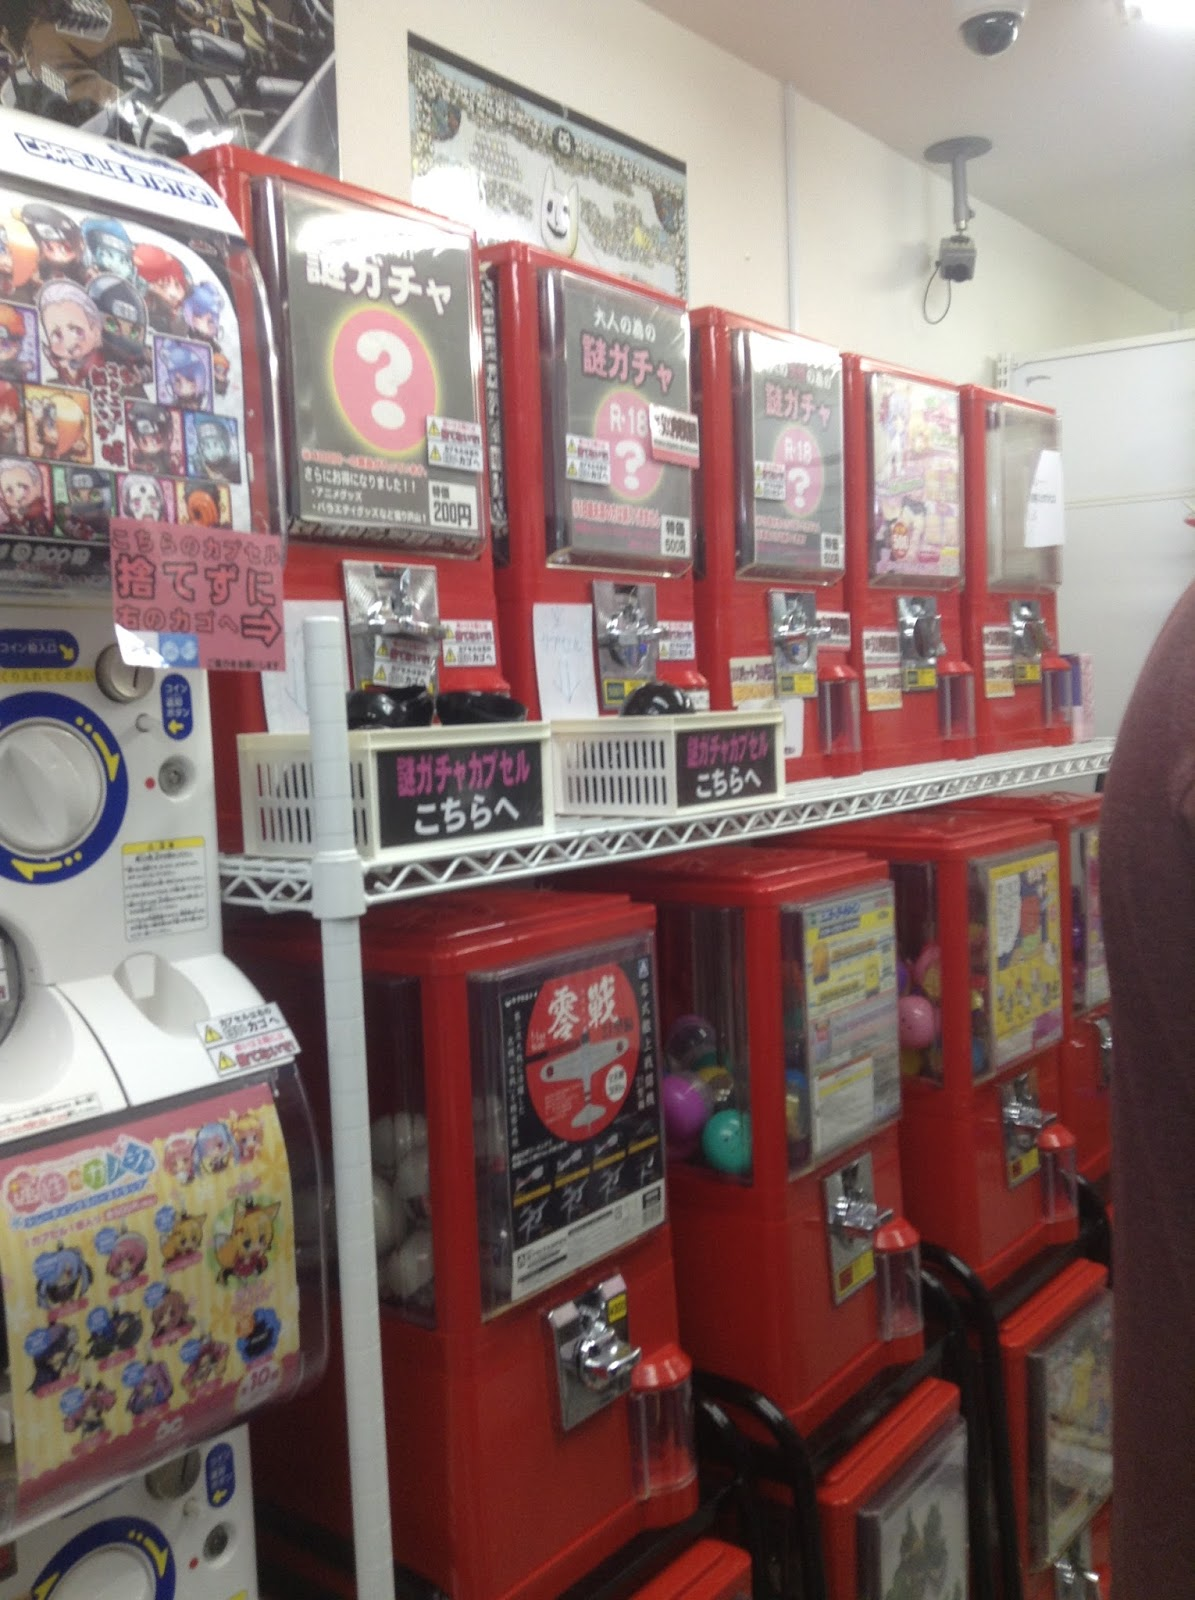 Gacha machine Nakano Broadway